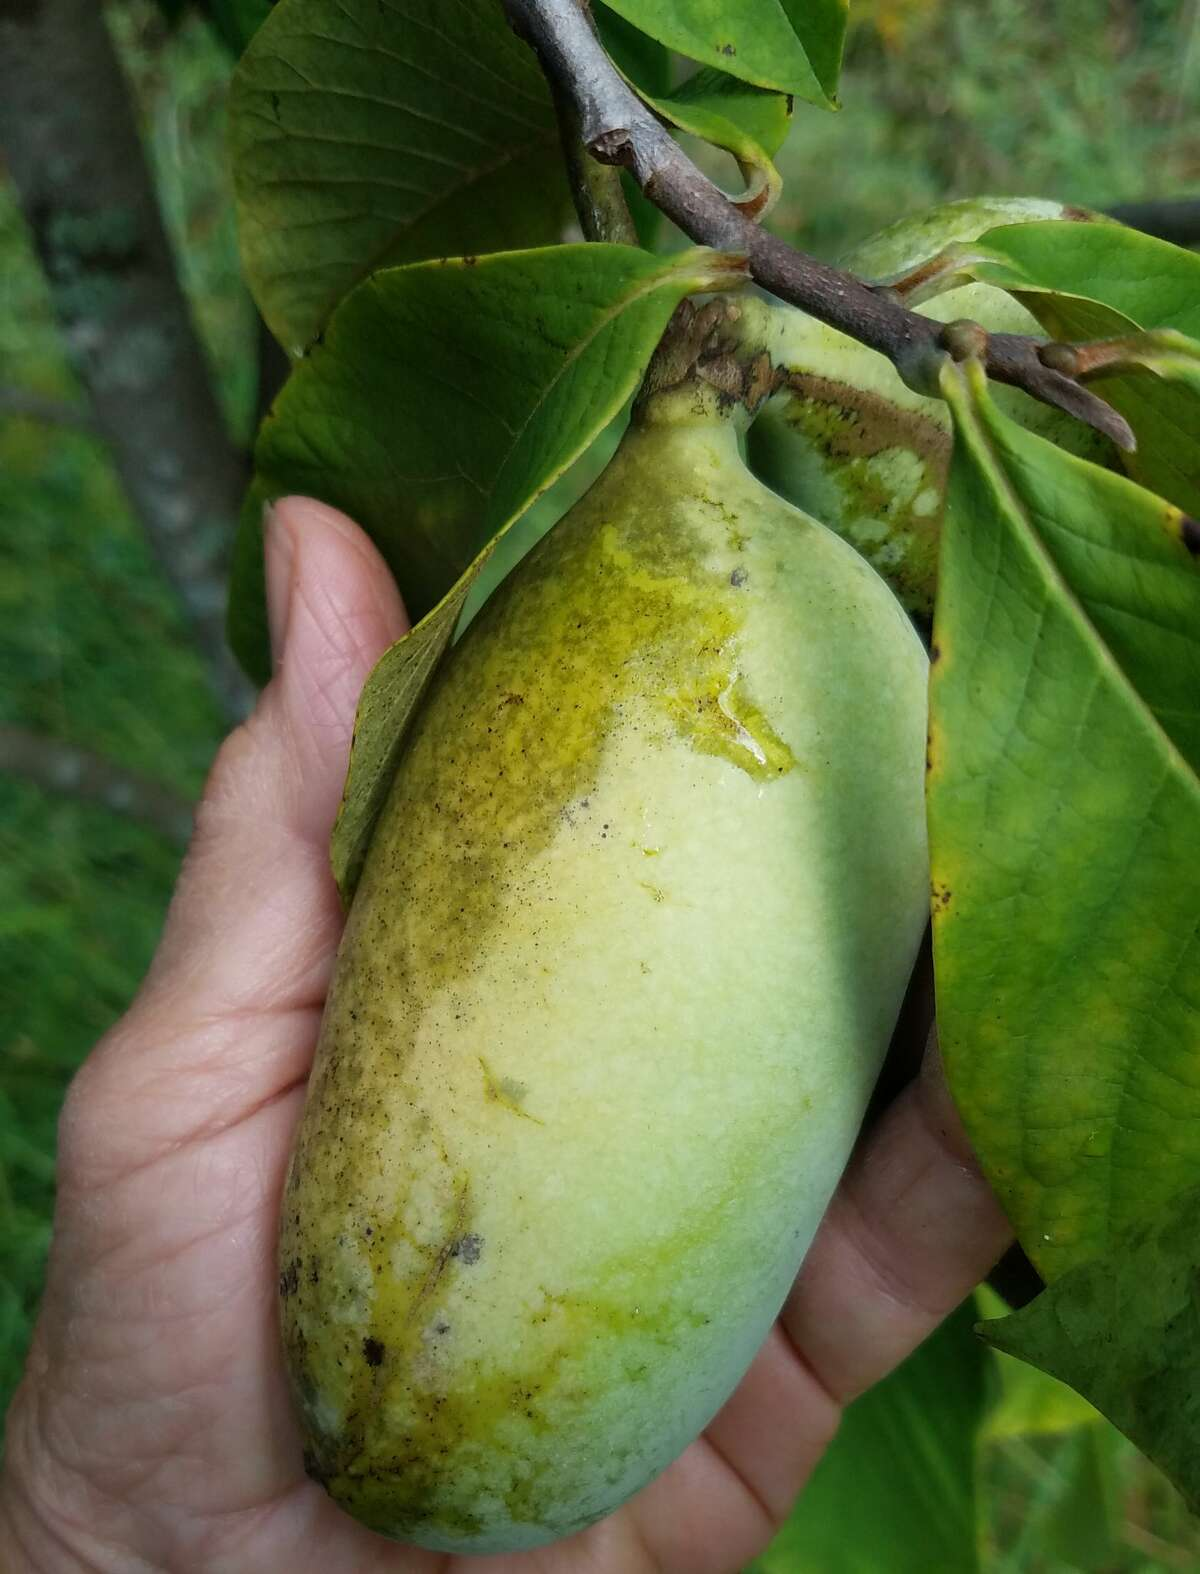 Pawpaws growing on trees at Haven Hill Farm in Greenwich, Washington County. They will be available for a few weeks in October at the farm's booth at the Troy Waterfront Farmers Market.